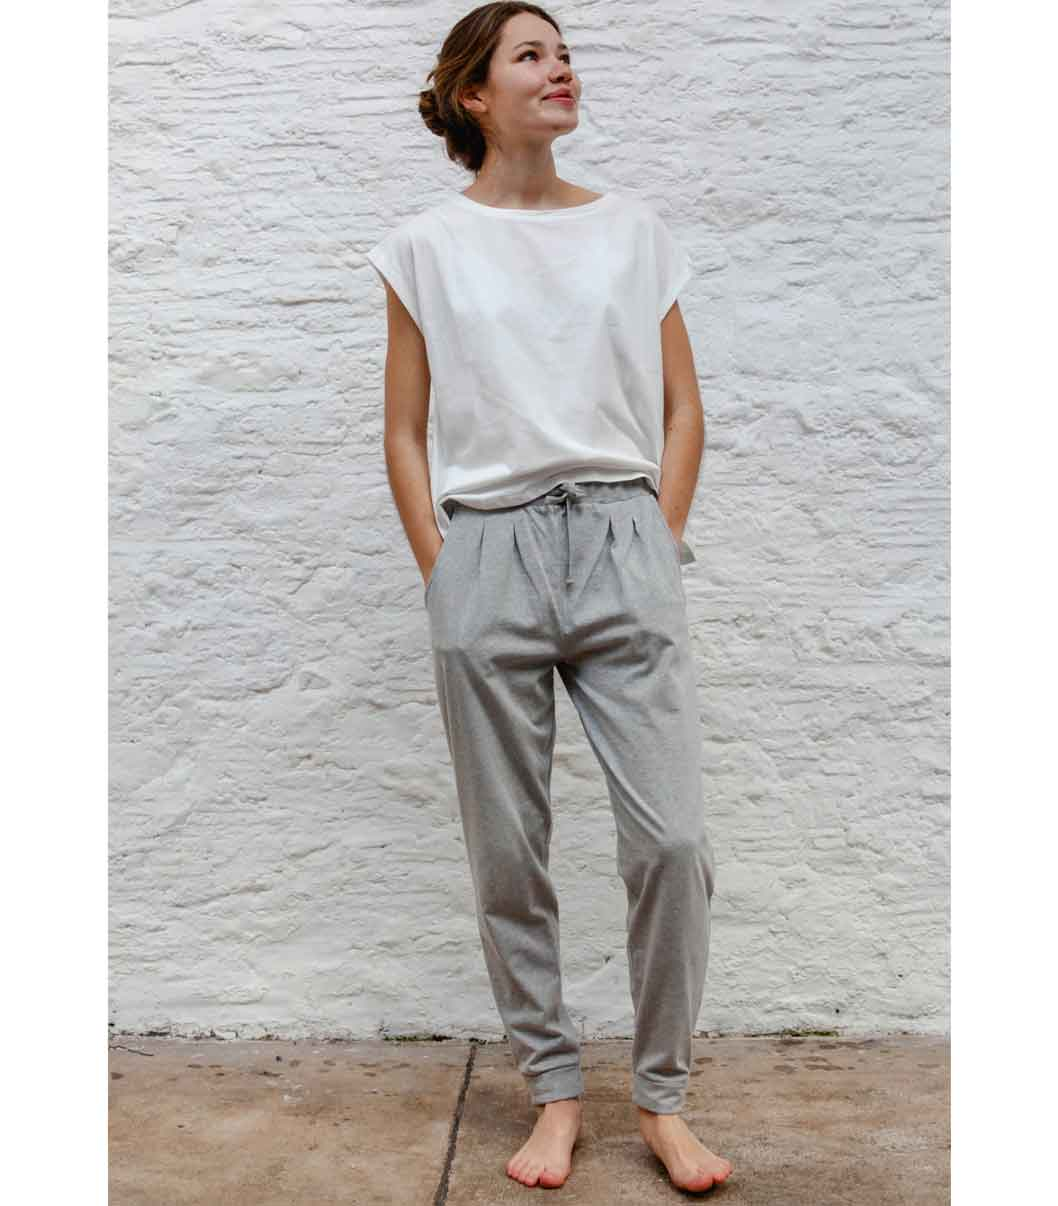 Organic Cotton Sleepwear Noctu Sustainable Ethical Fashion Label